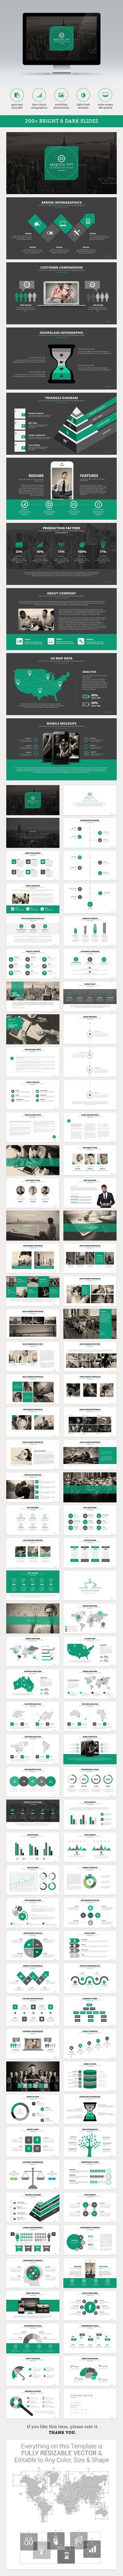 Majestic PowerPoint Template is suitable for any Business Presentations. #MajesticPowerPoint #1studio #GraphicRiver